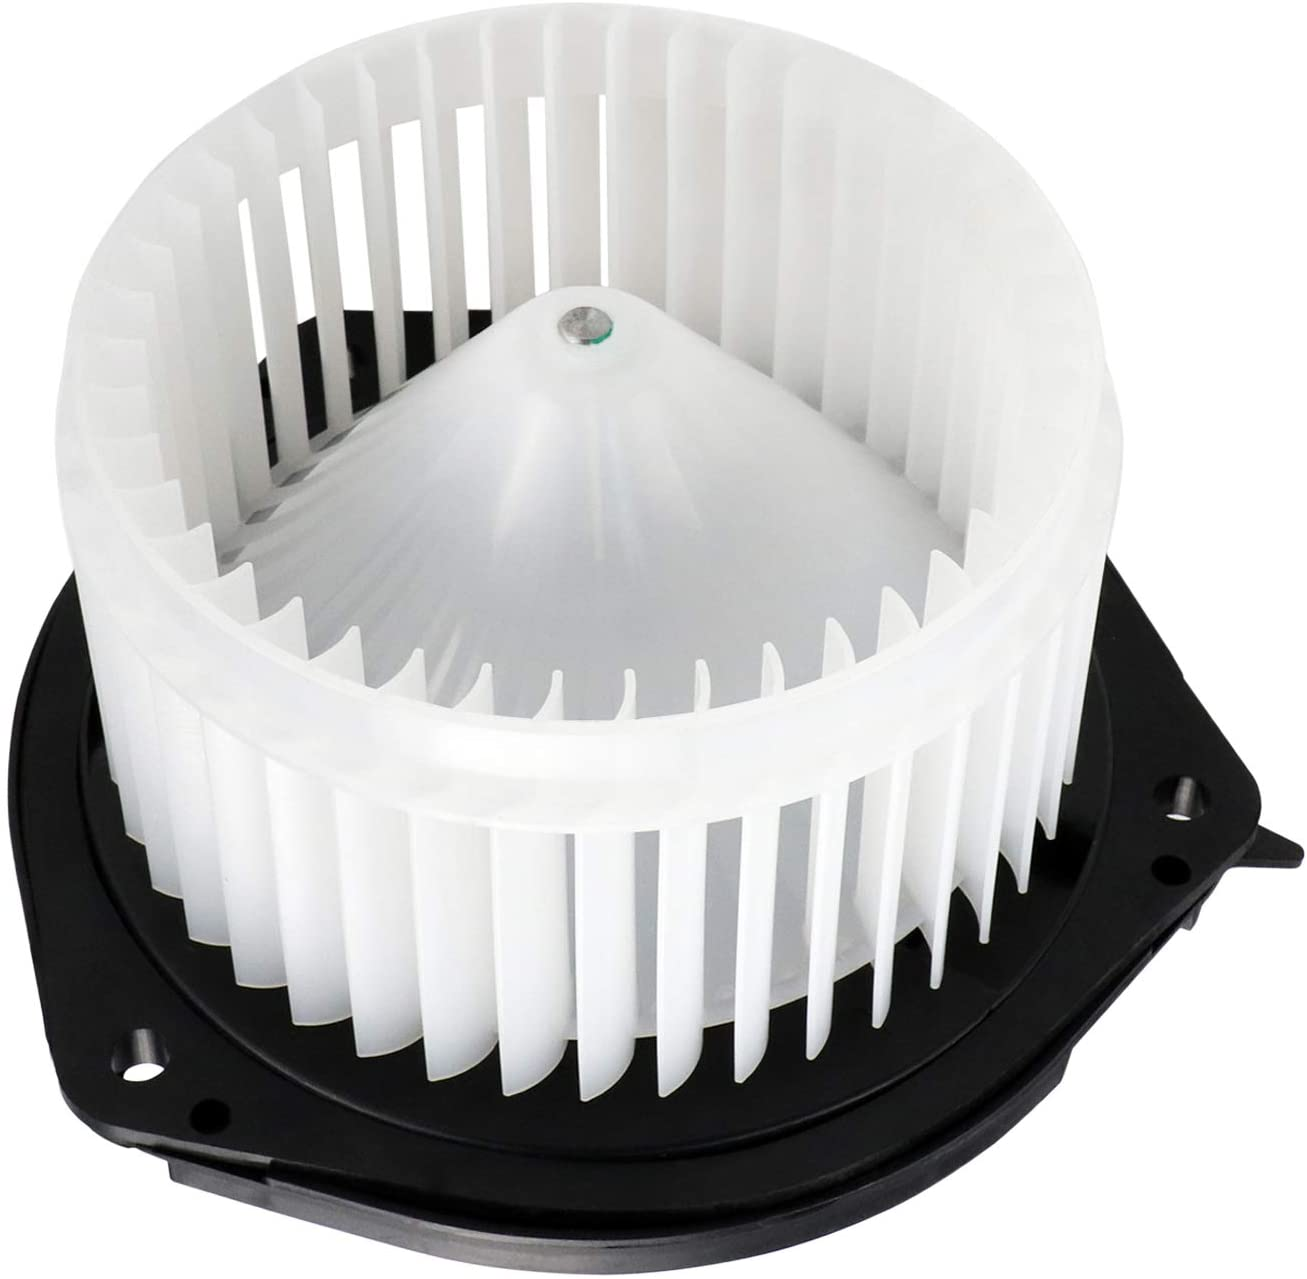 Youxmoto HVAC Blower Motor Assembly Fit for 2004-2016 Chevy Impala, 2004-2008 Pontiac Grand Prix, 2005-2009 Buick LaCrosse, 2004-2007 Chevy Monte Carlo Replace for TYC 700107